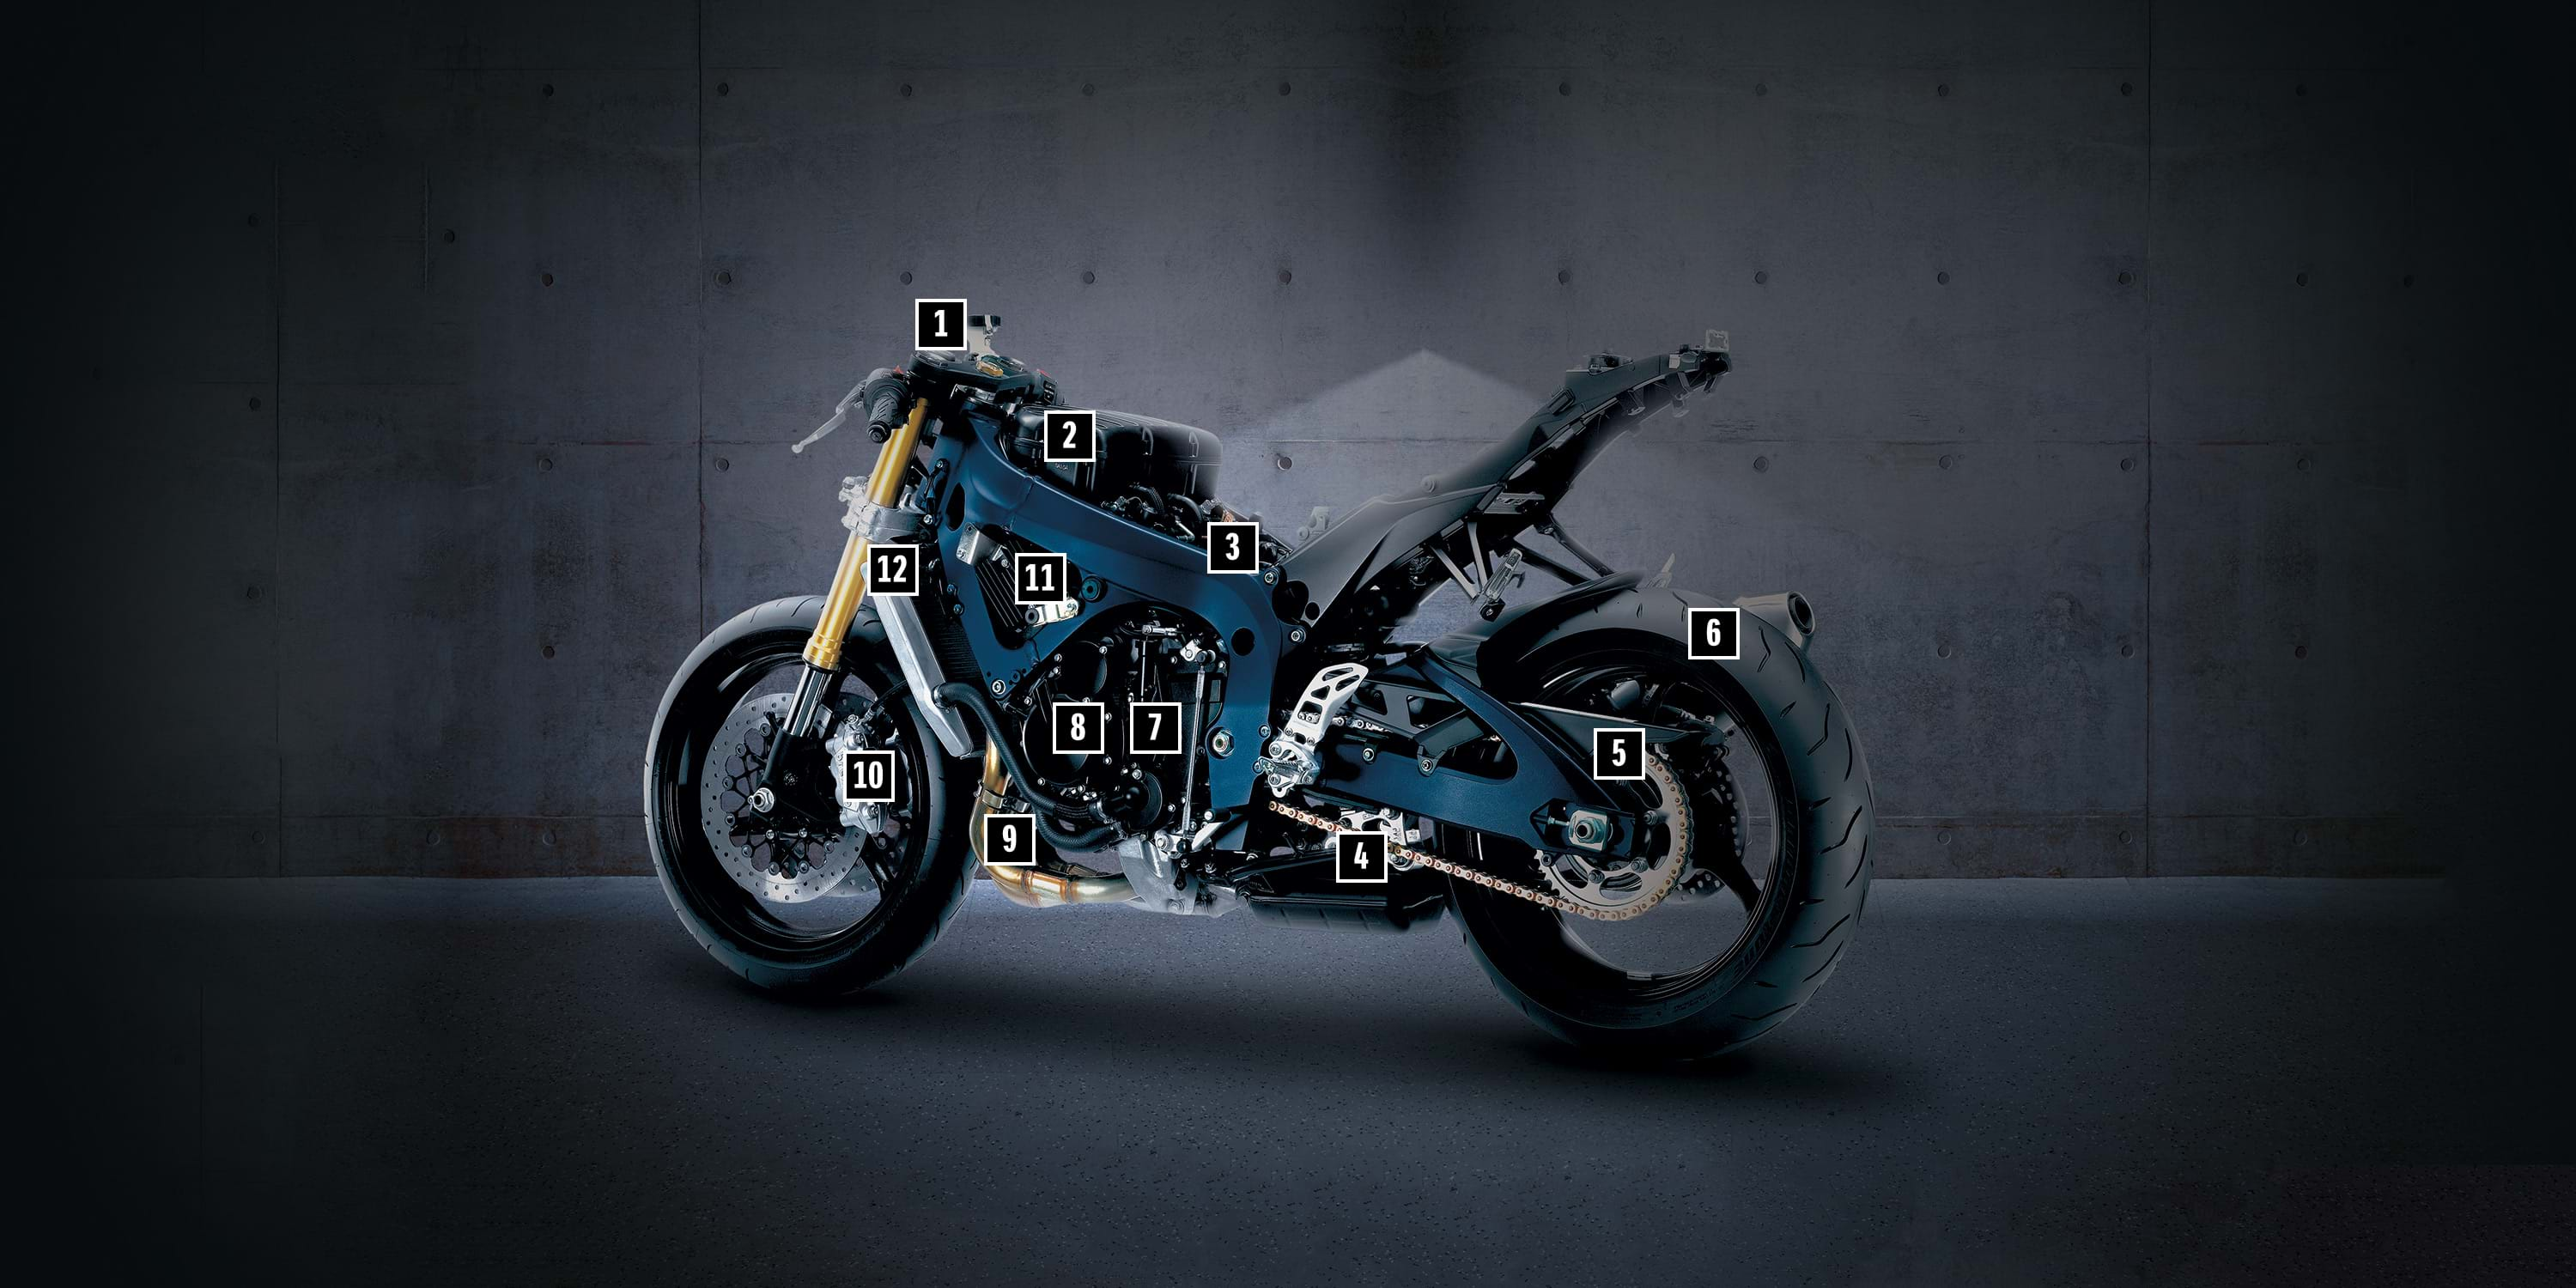 Stripped down bike with numbers elements.